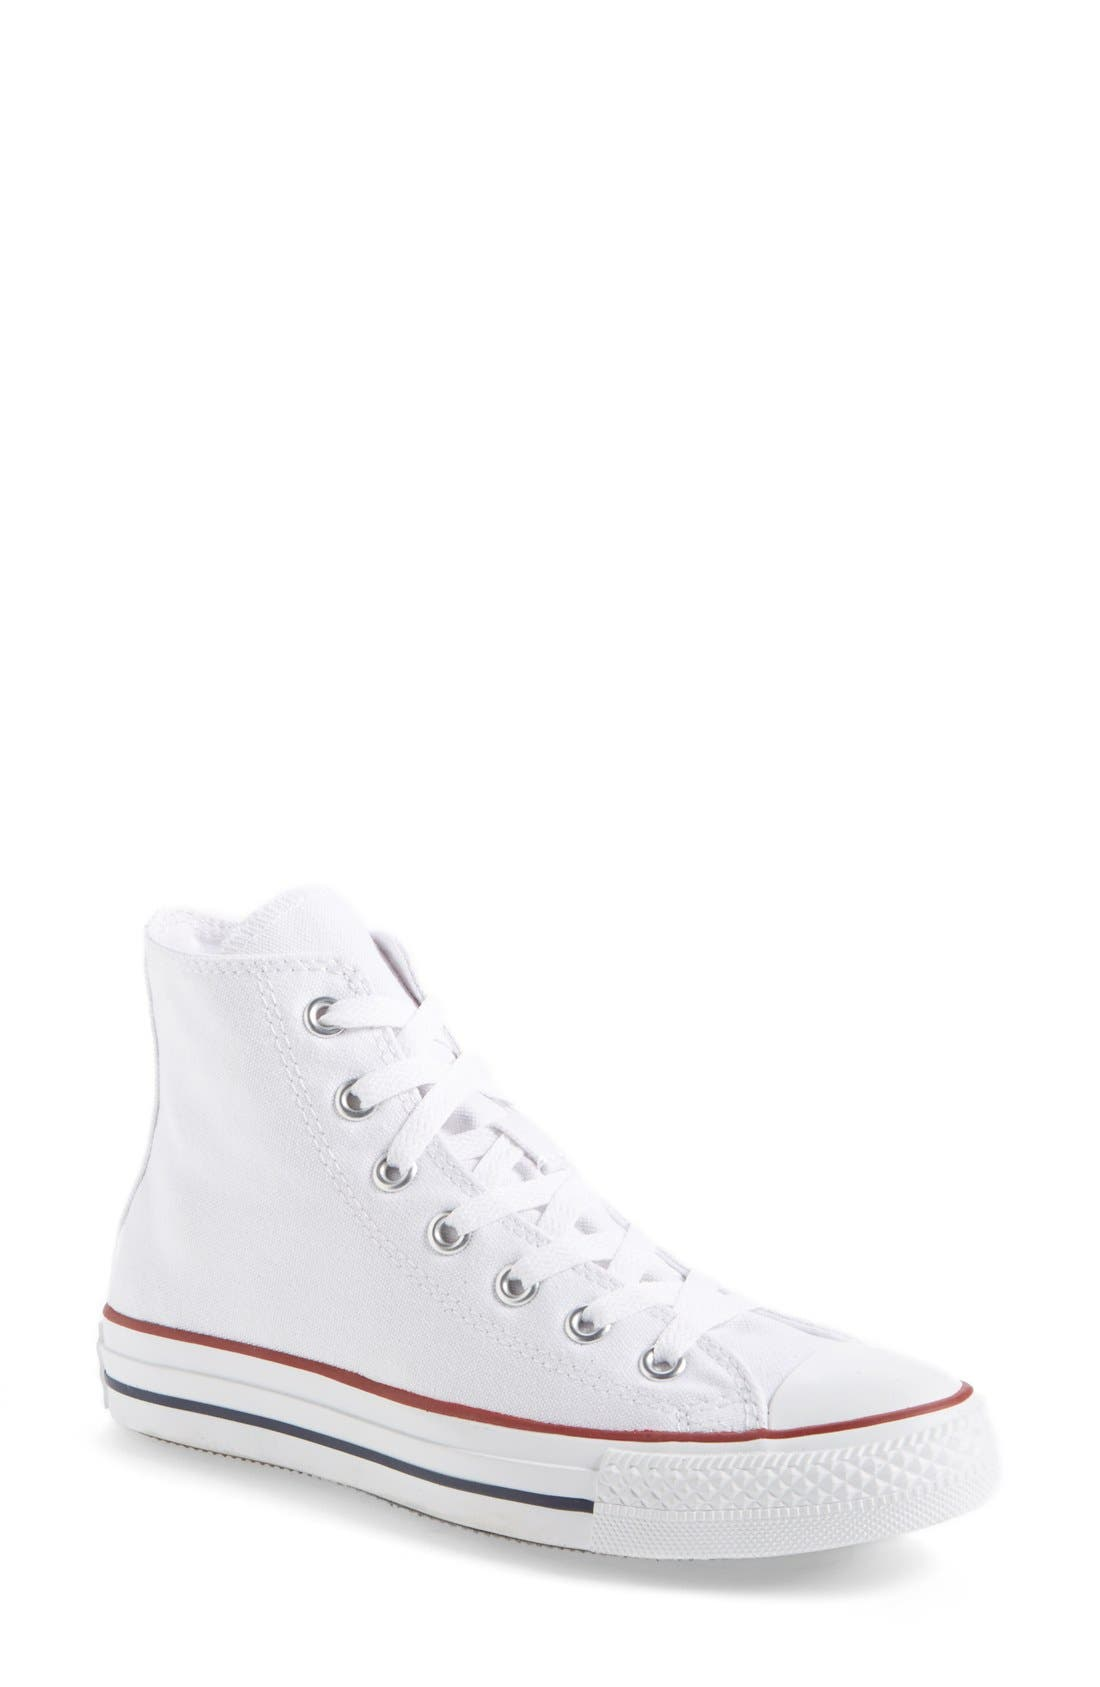 Alternate Image 1 Selected - Converse Chuck Taylor® High Top Sneaker (Women)